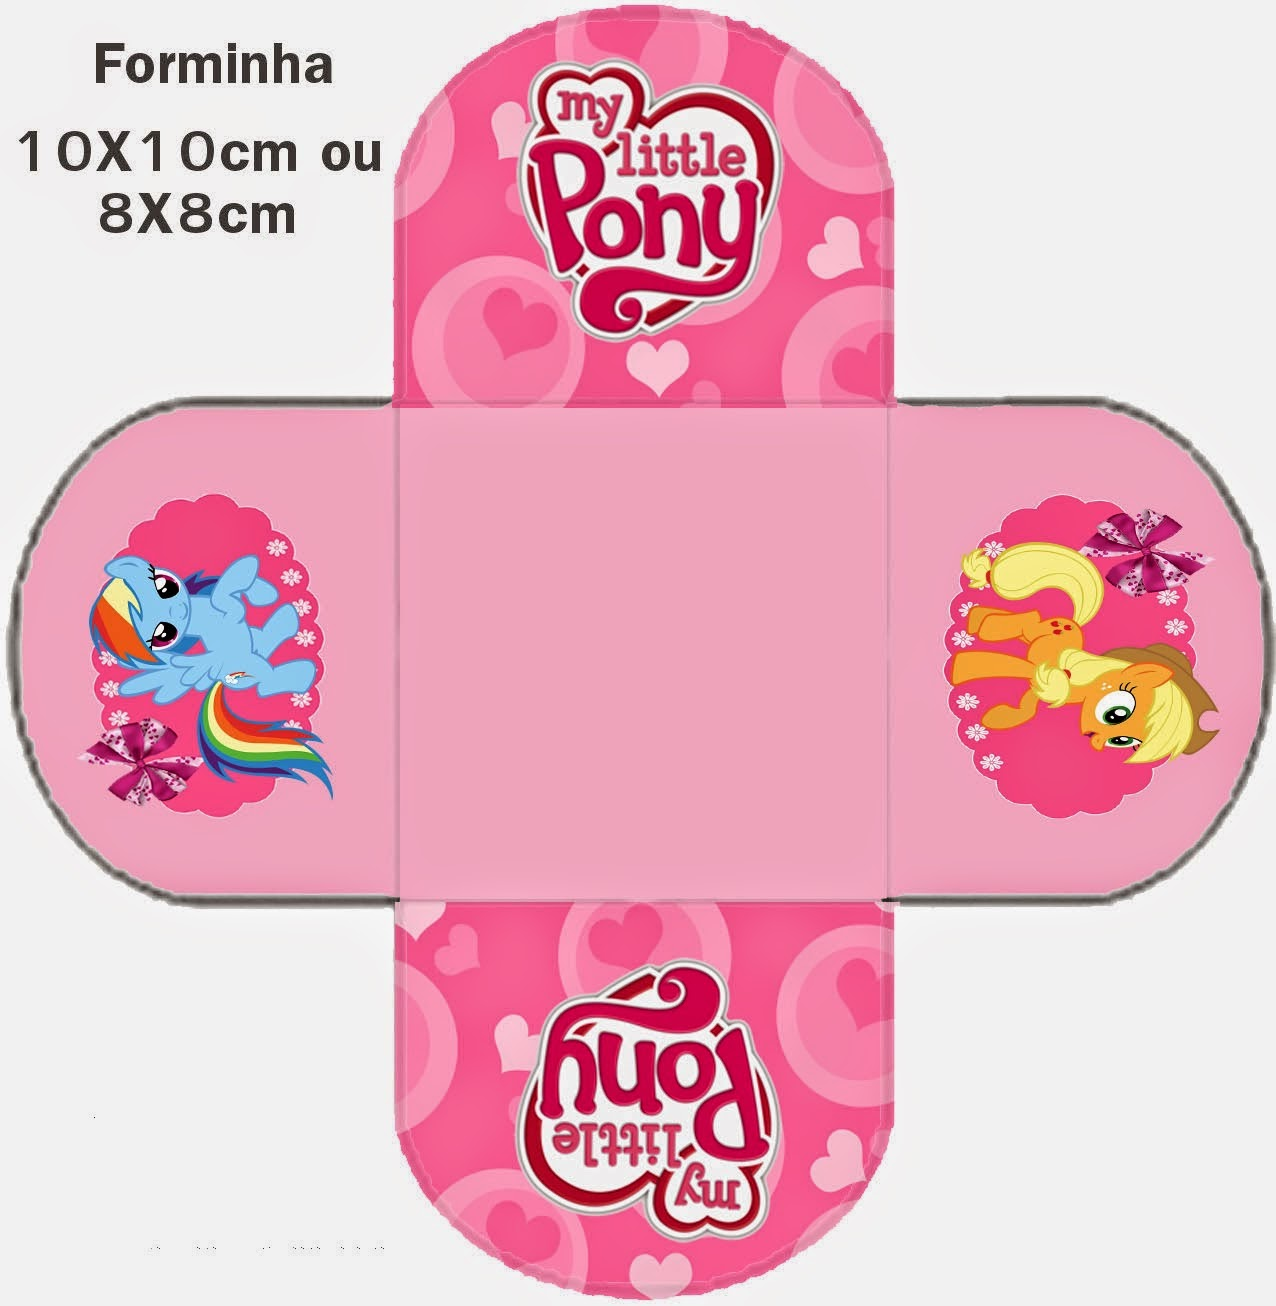 My Little Pony Free Printable Kit